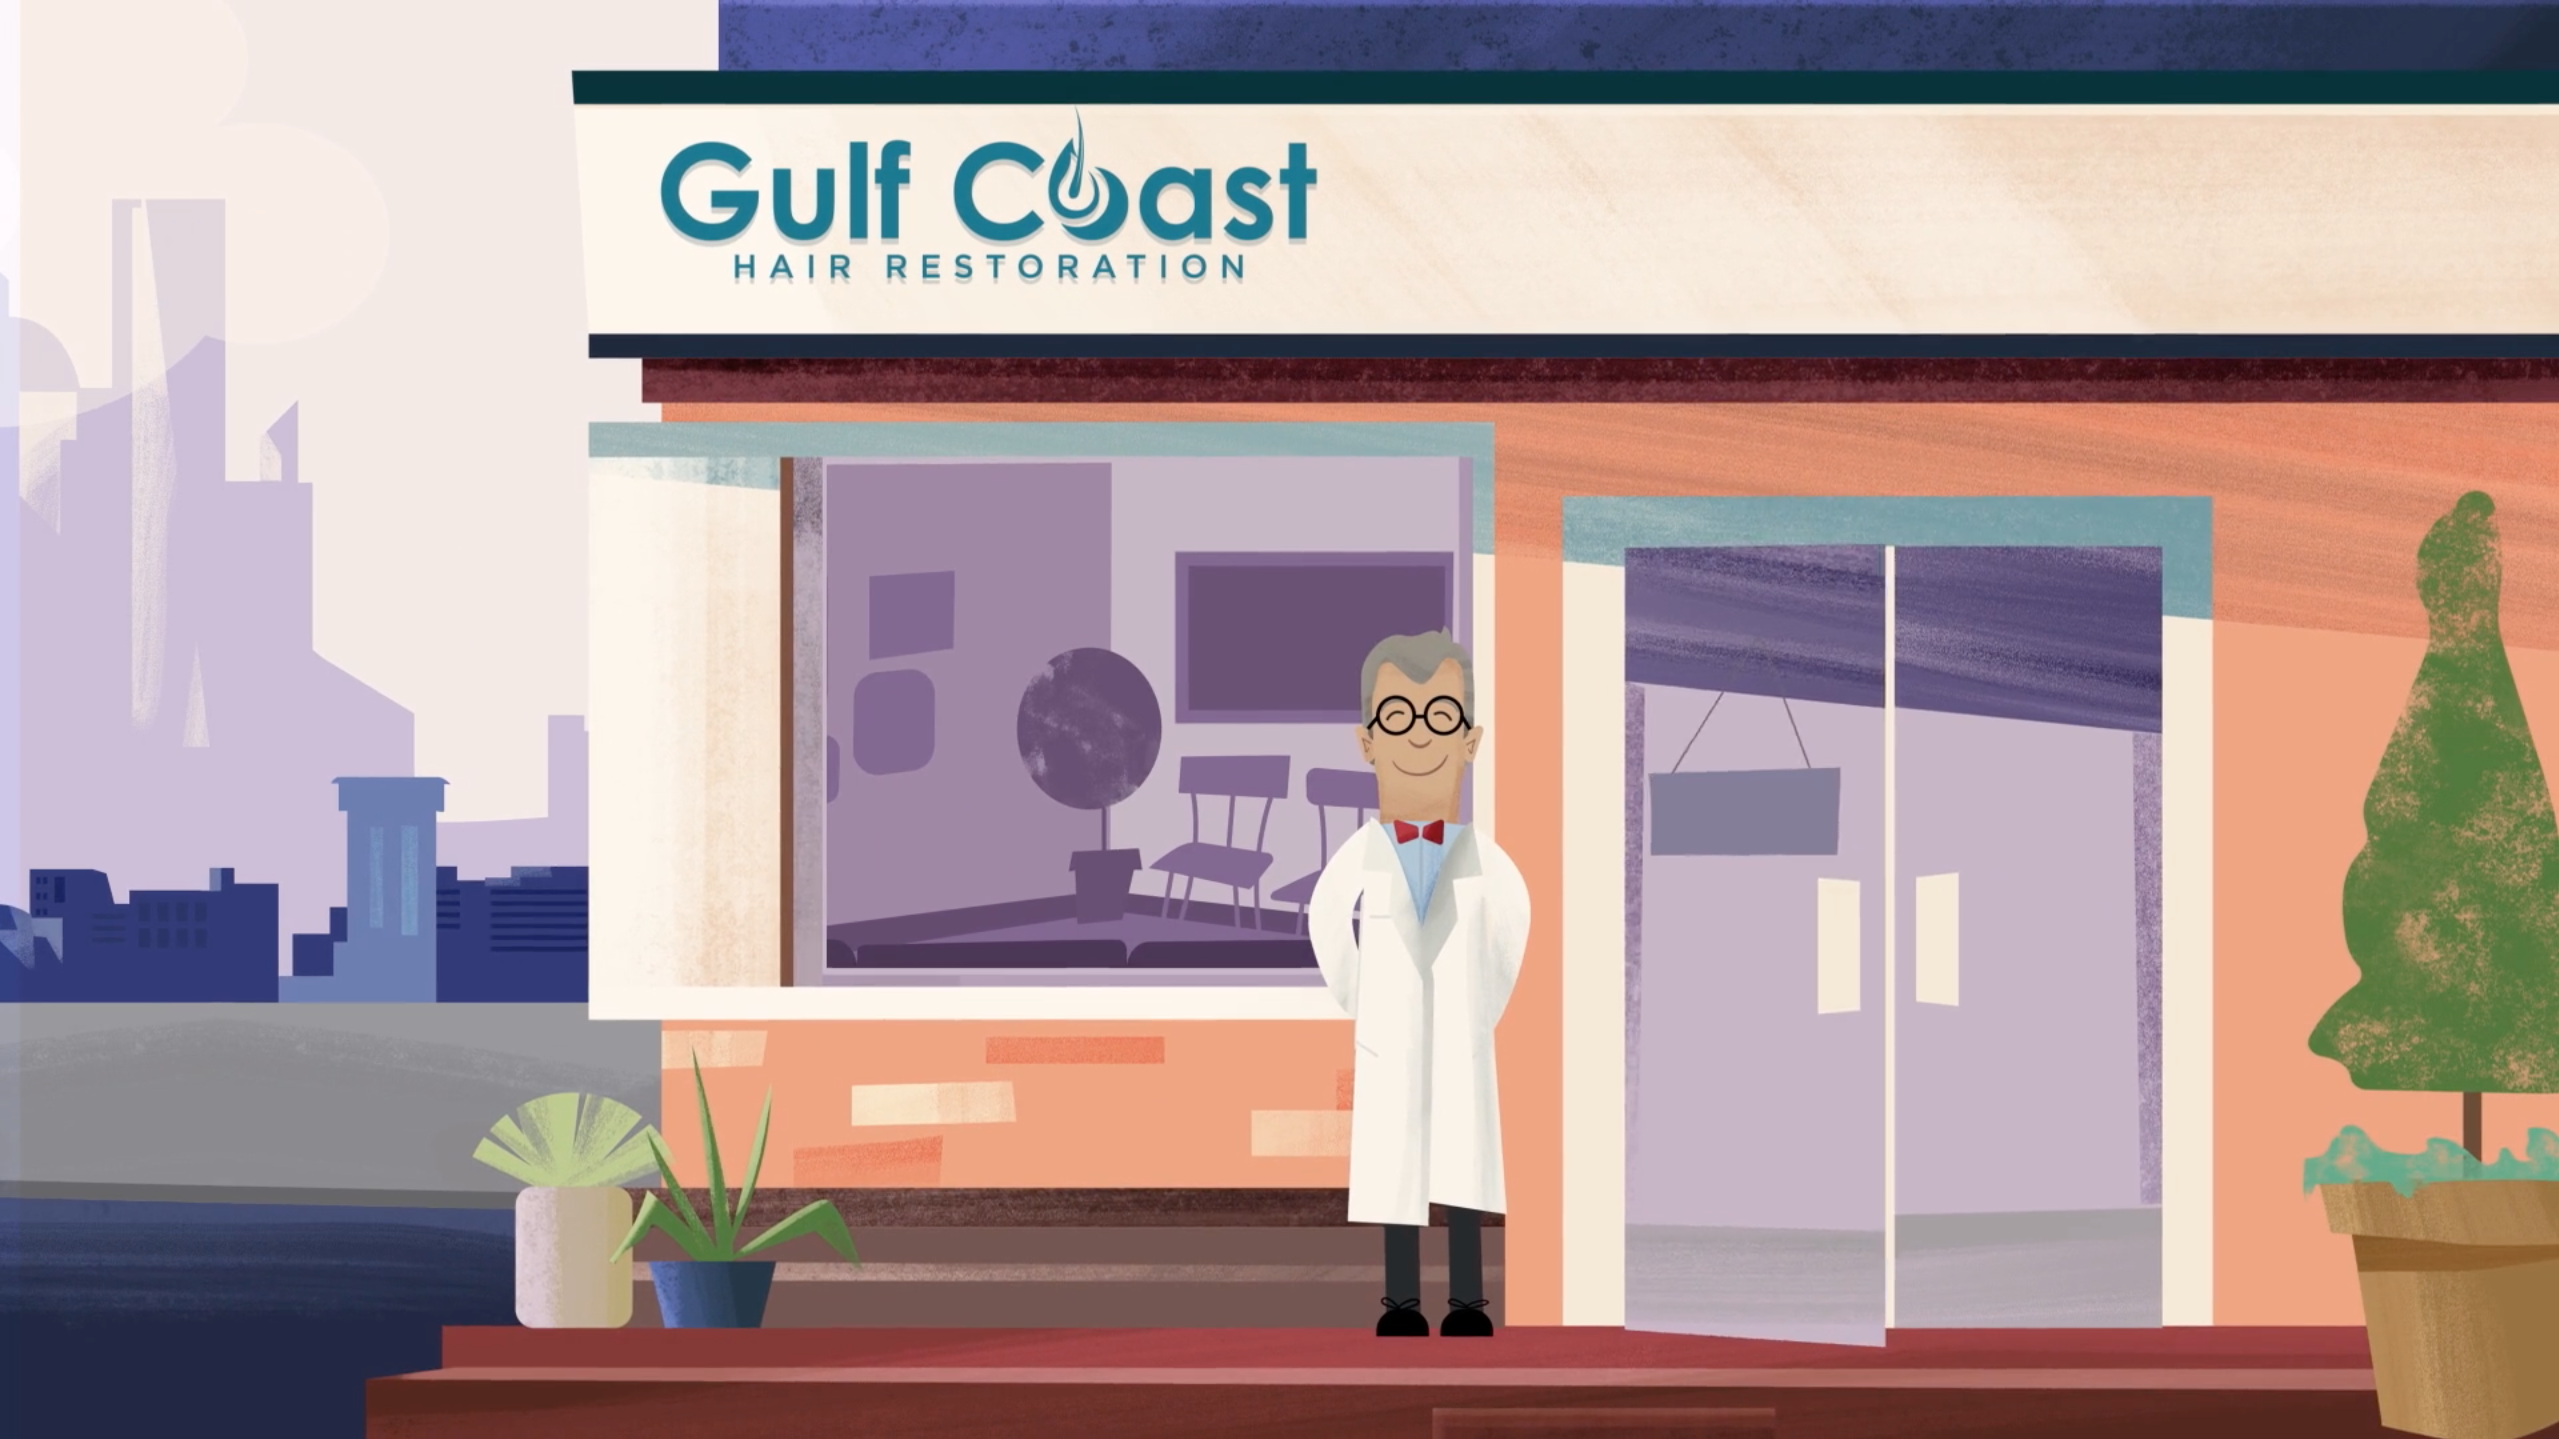 Gulf Coast Hair Restoration